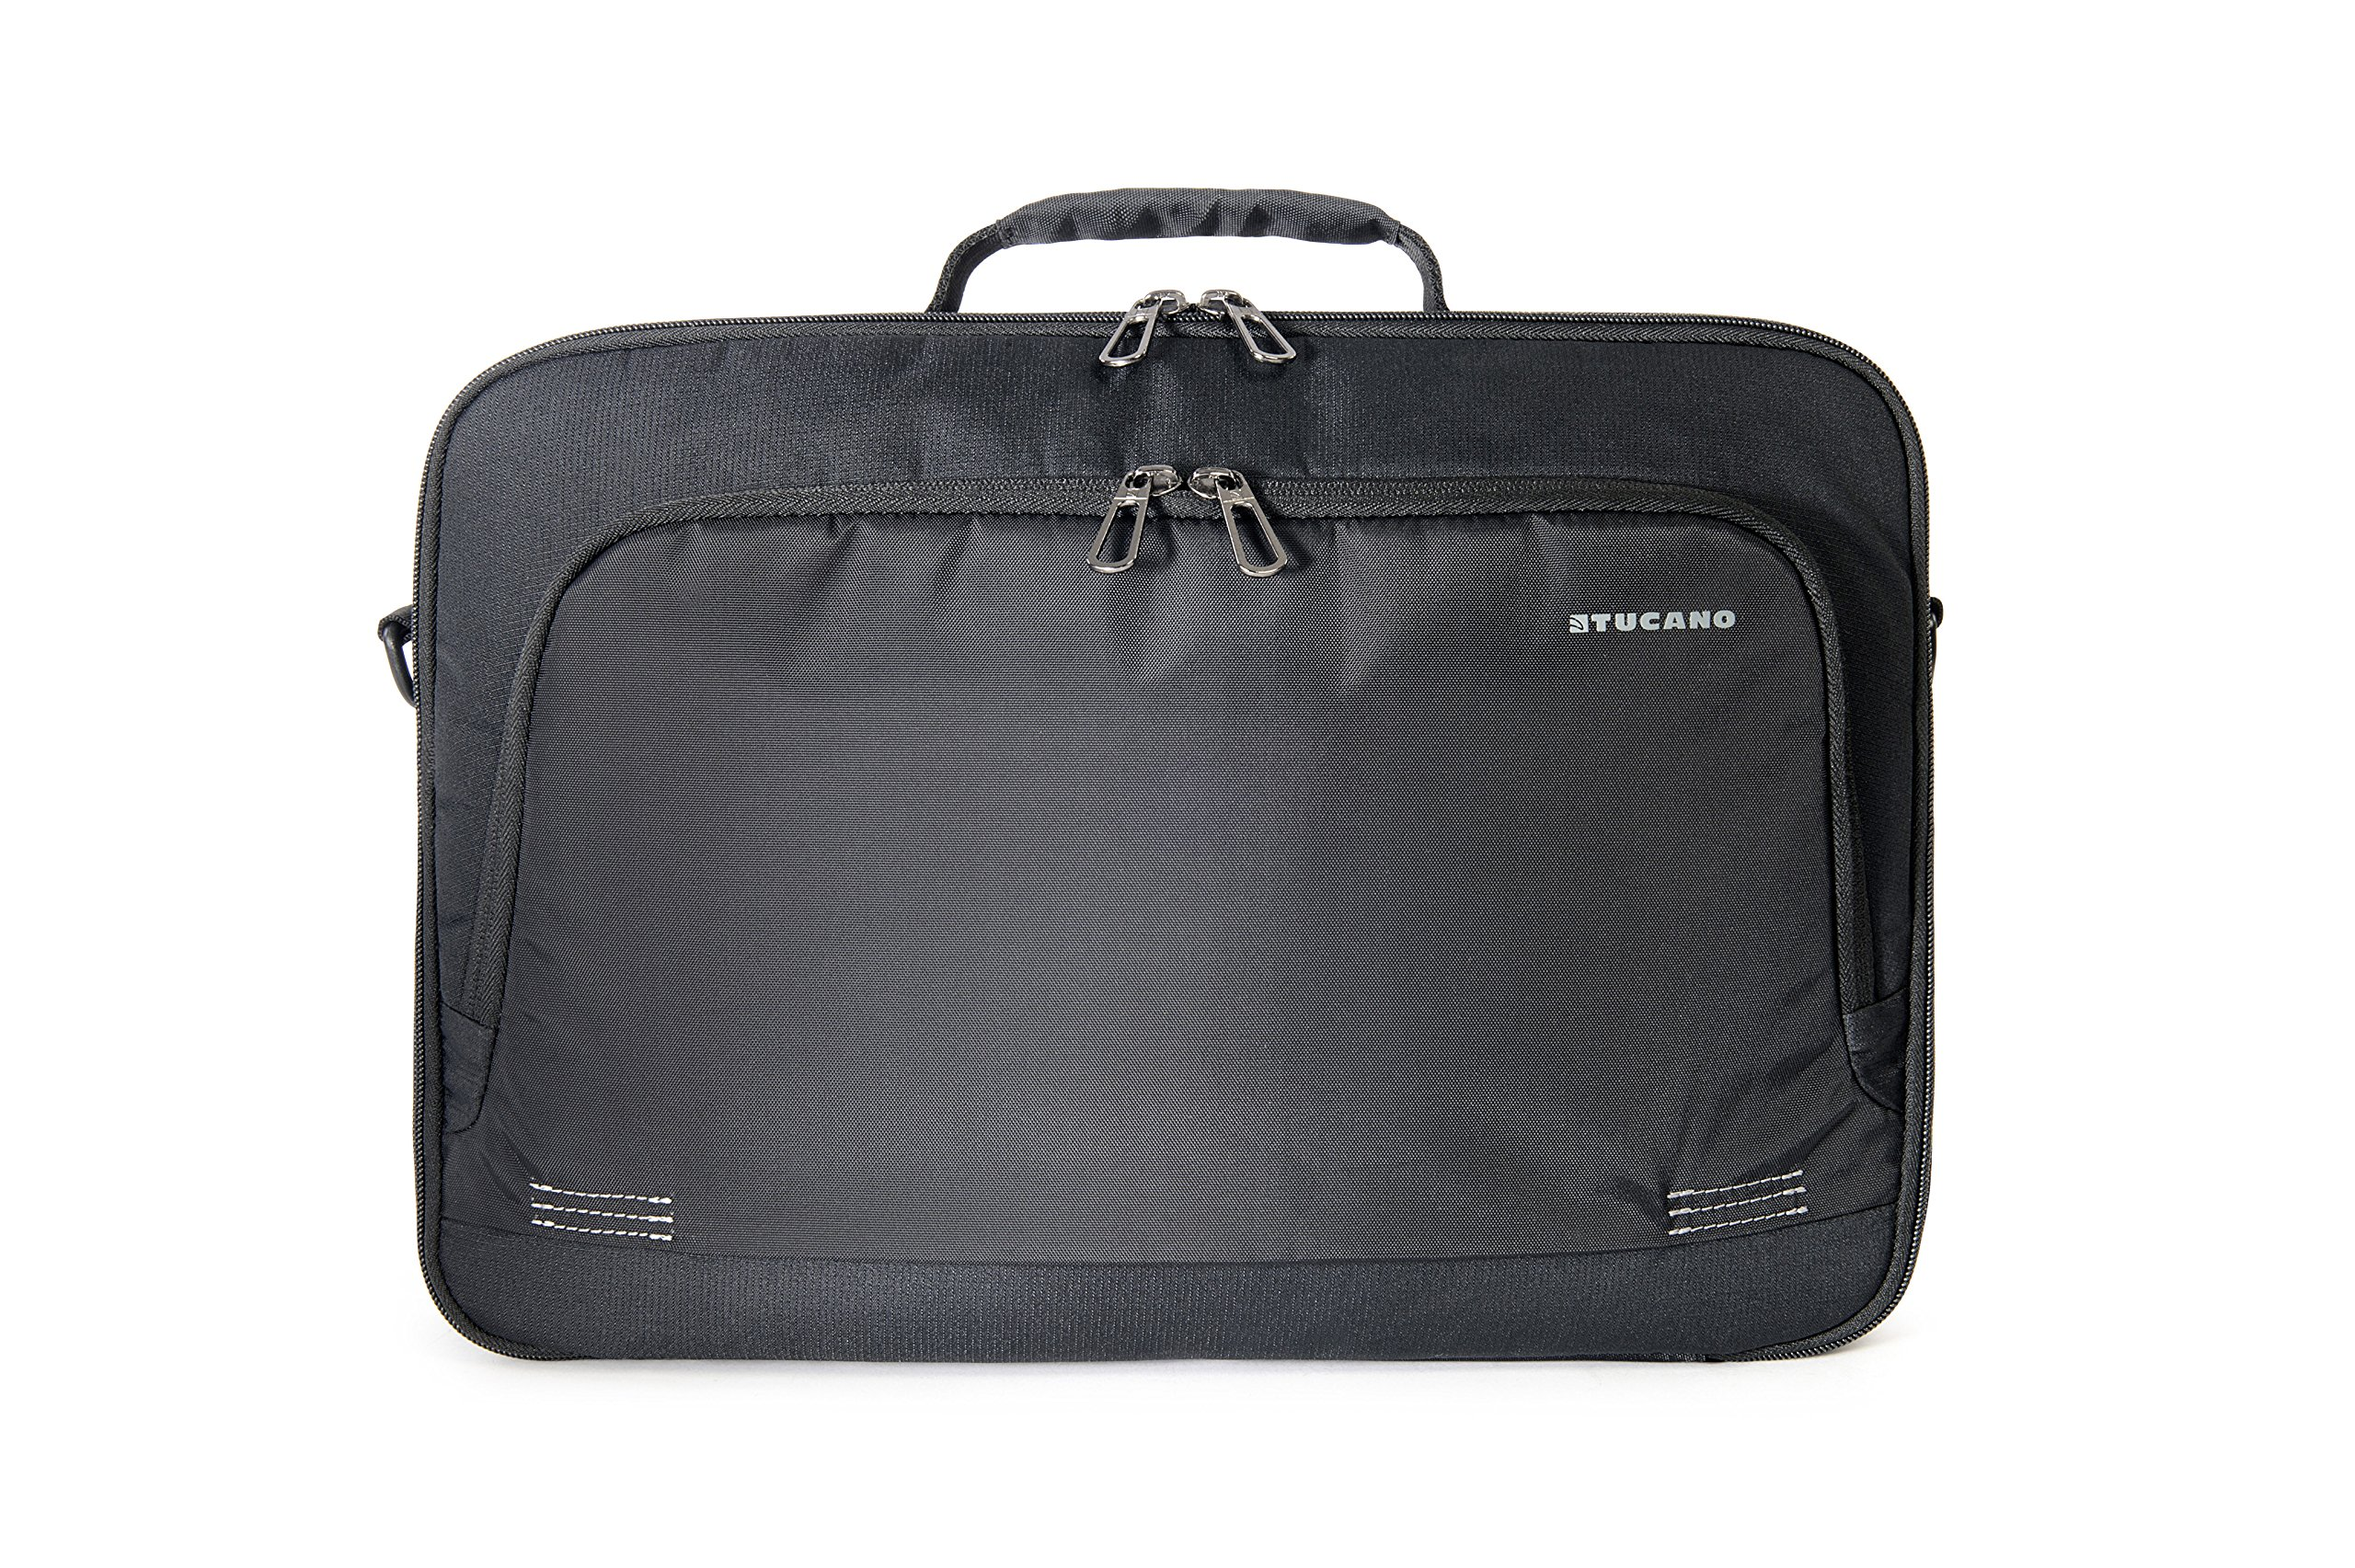 TUCANO BFOR15 Laptop Computer Bags & Cases